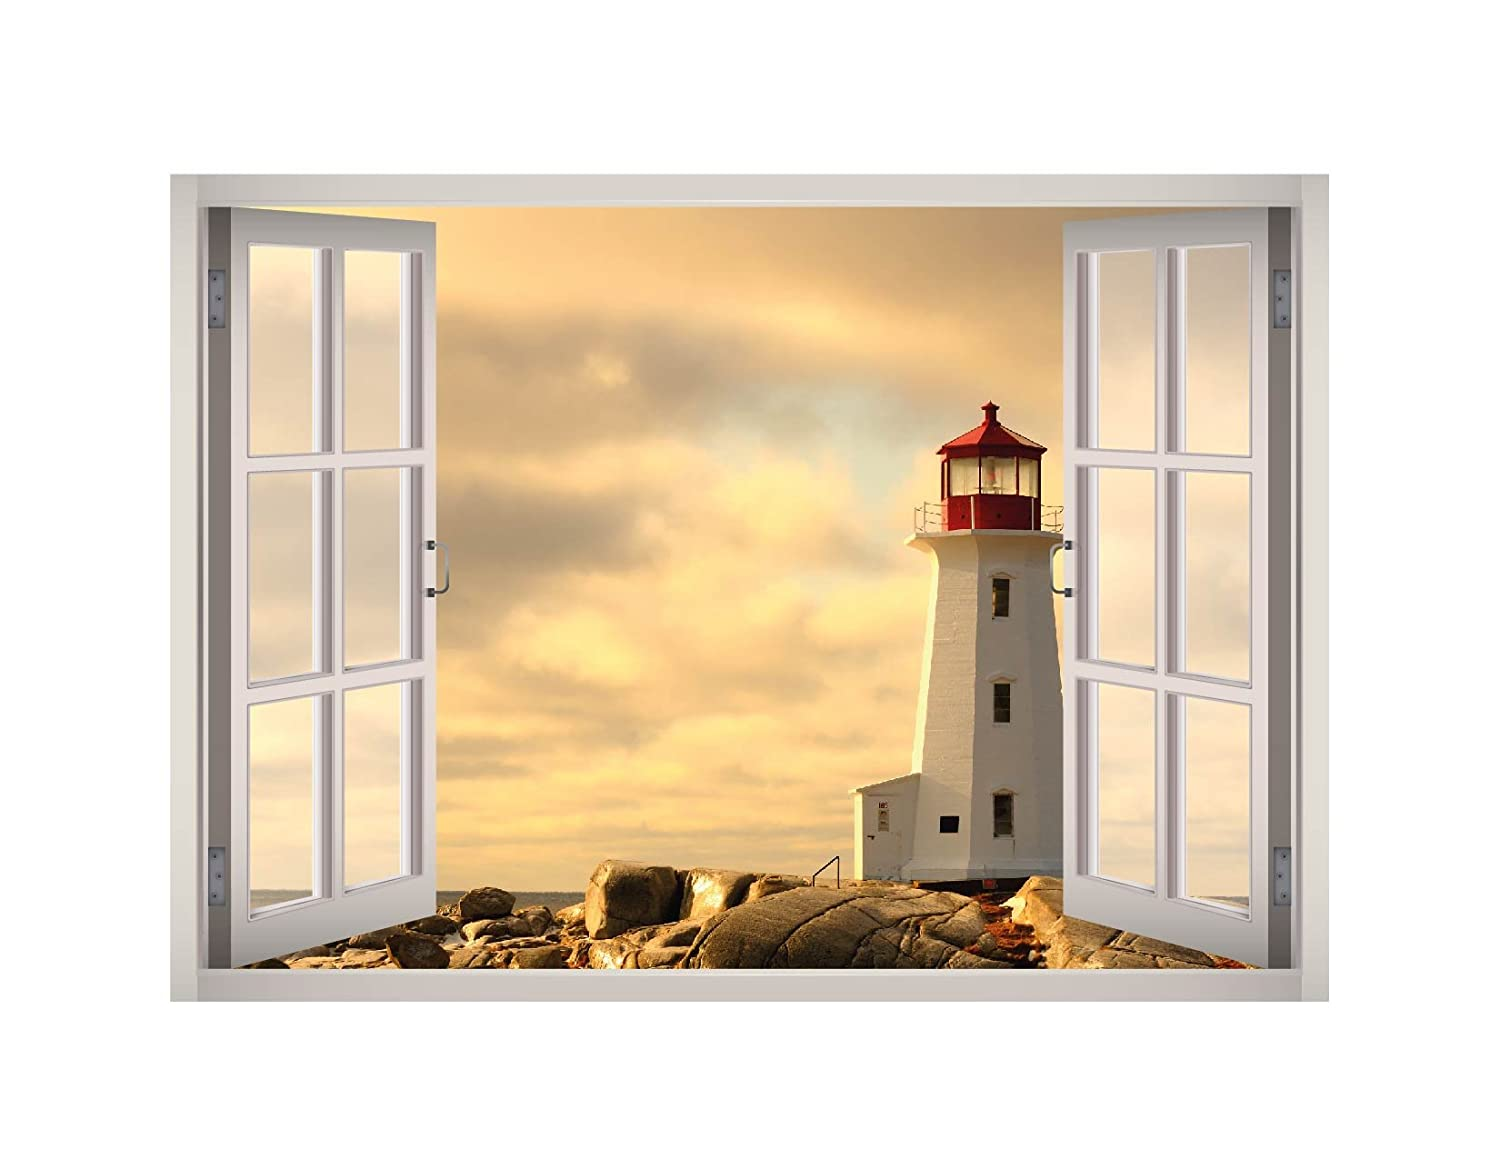 Amazon com lighthouse view window 3d wall decal art removable wallpaper mural sticker vinyl home decor west mountain w33 small 24w x 17h home